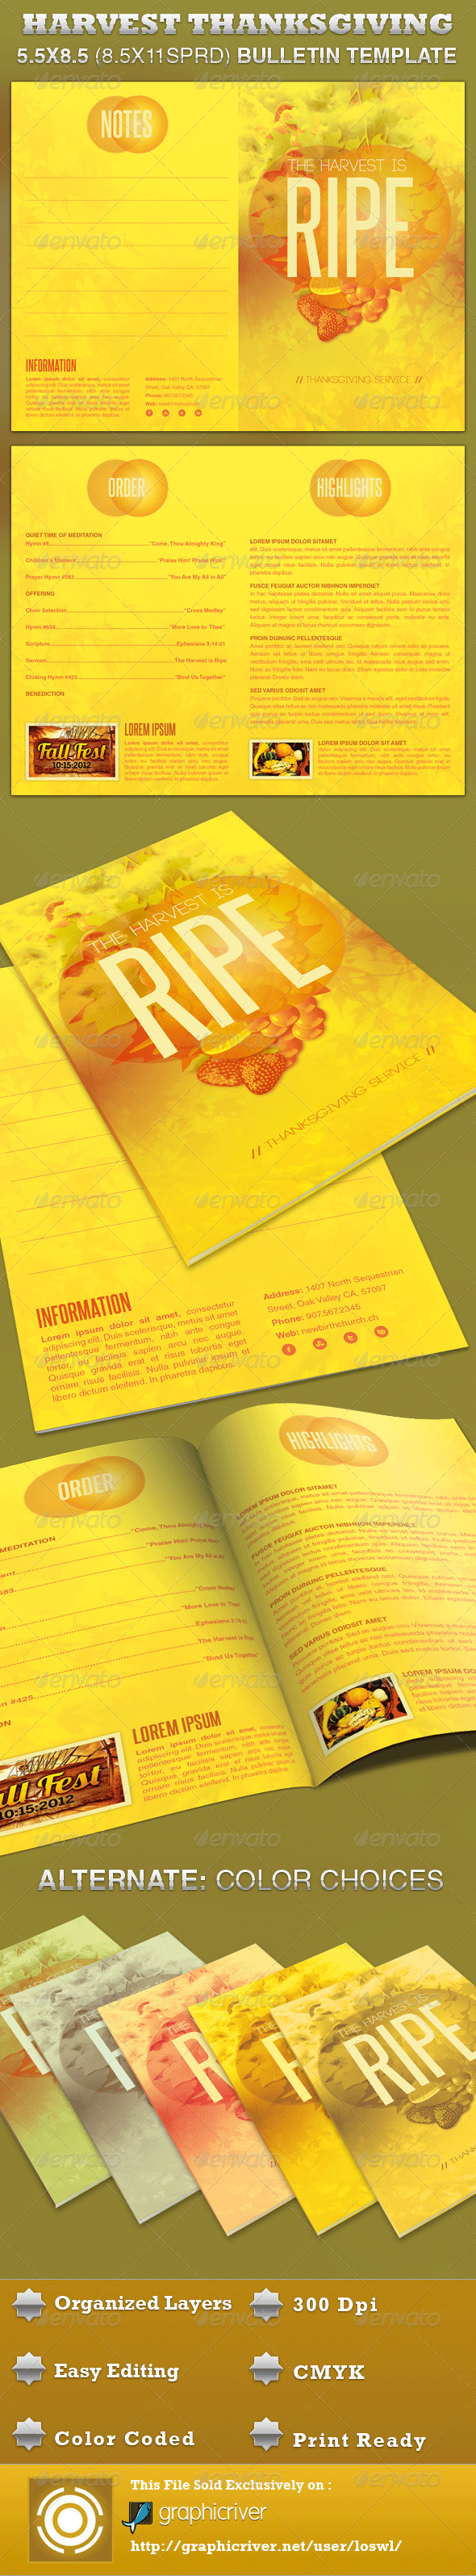 Church Harvest Thanksgiving Service Bulletin - Informational Brochures